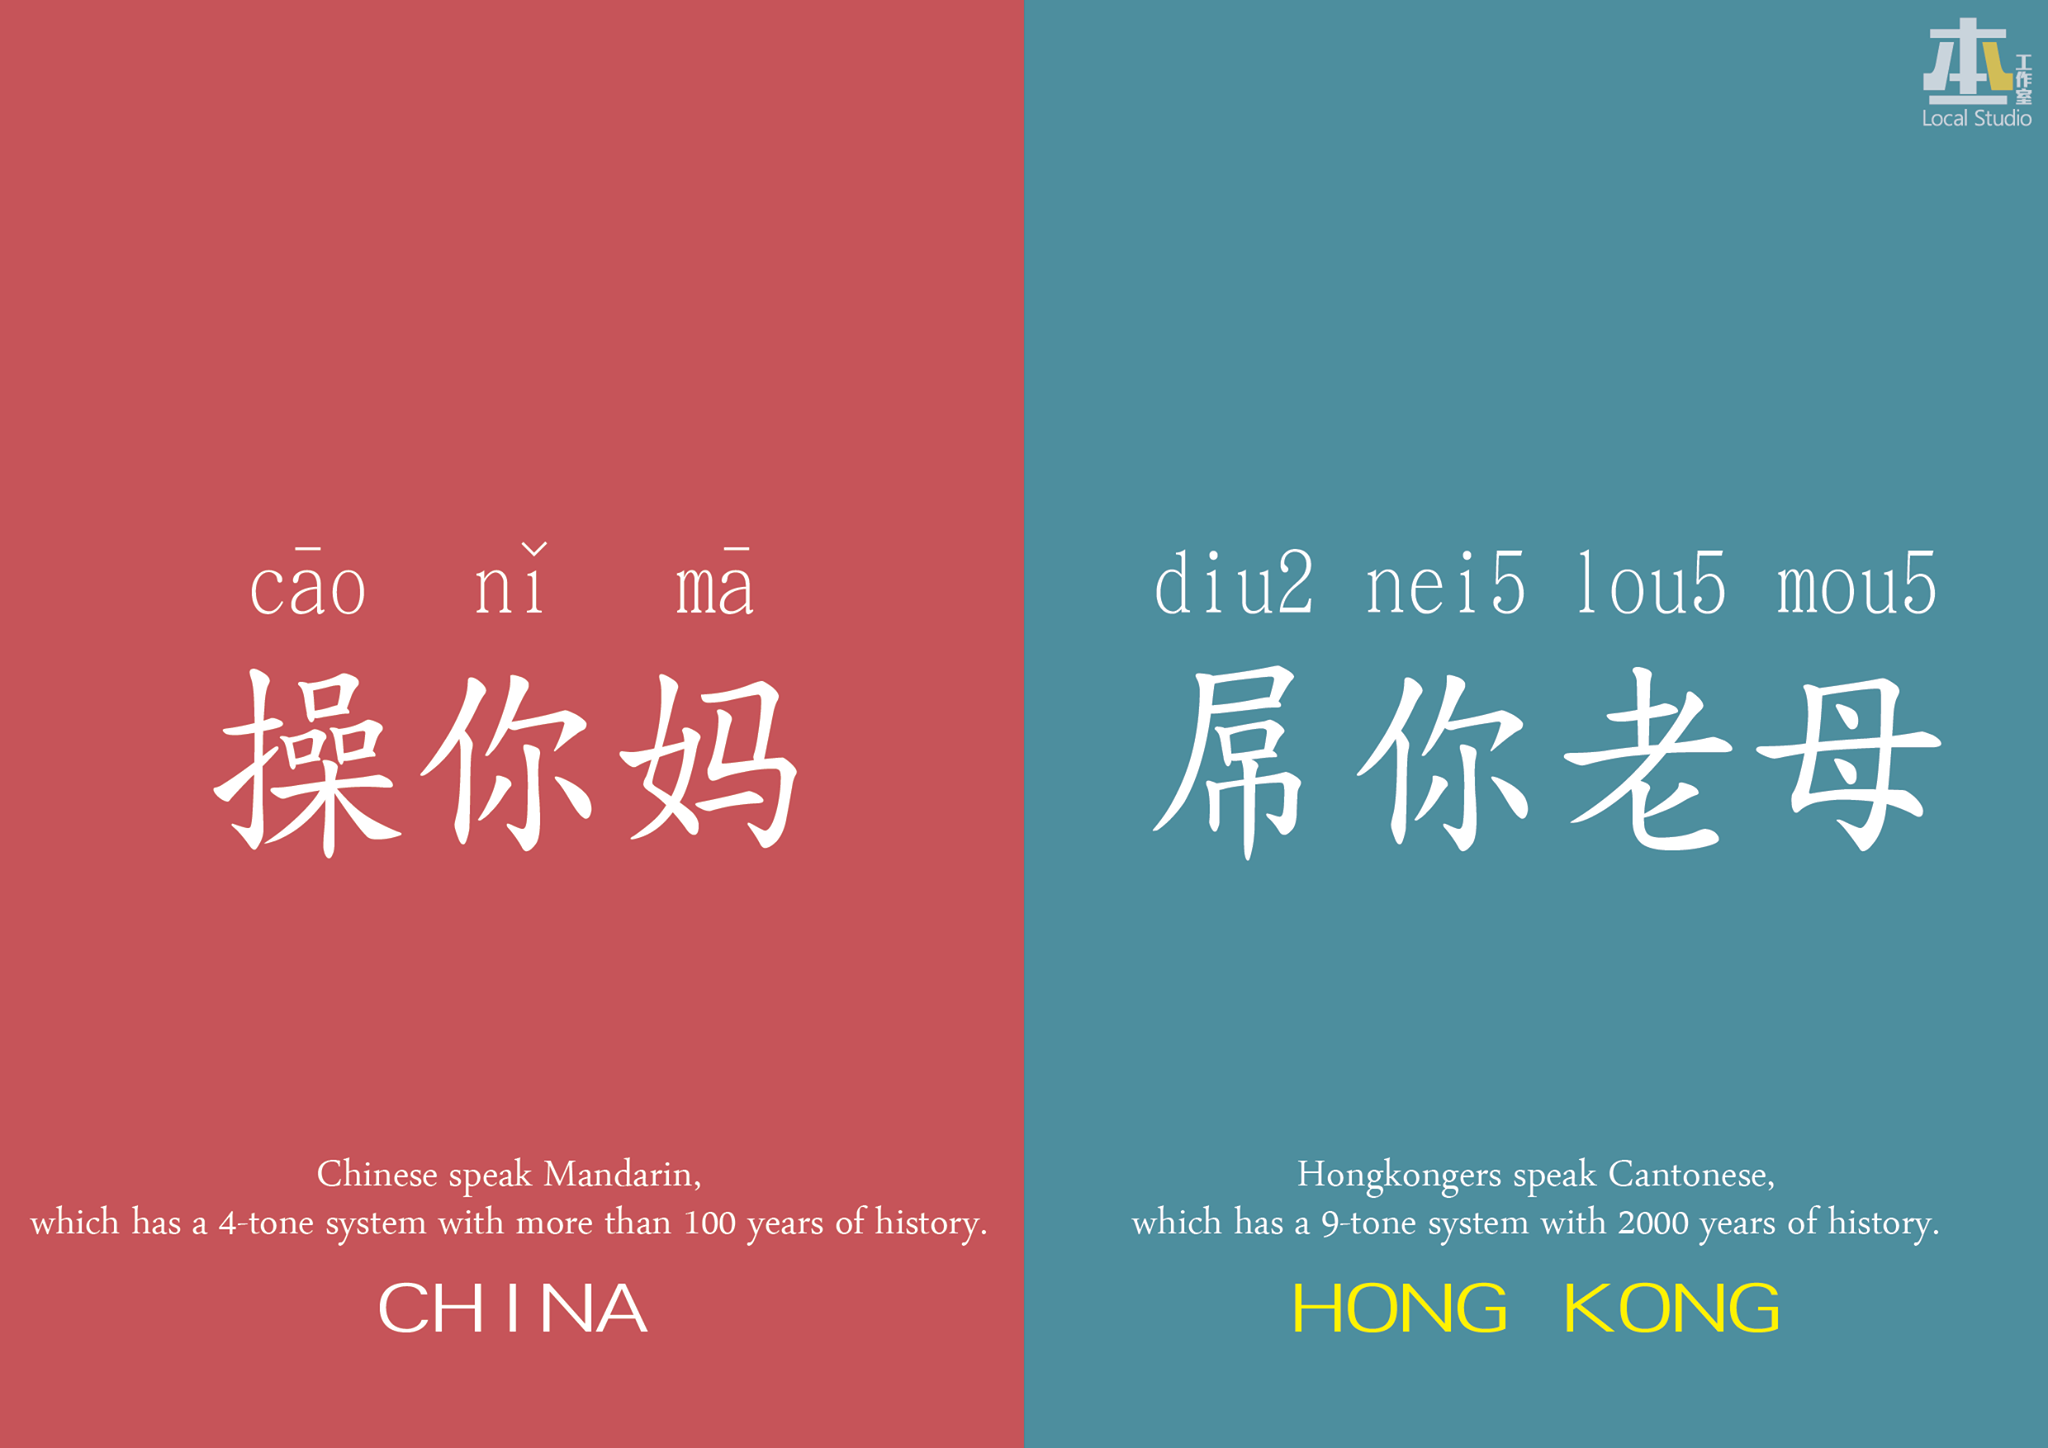 an argument against the compulsory subject of putonghua in hong kong » why our young generation will stay on guard over language policy on the pulse.